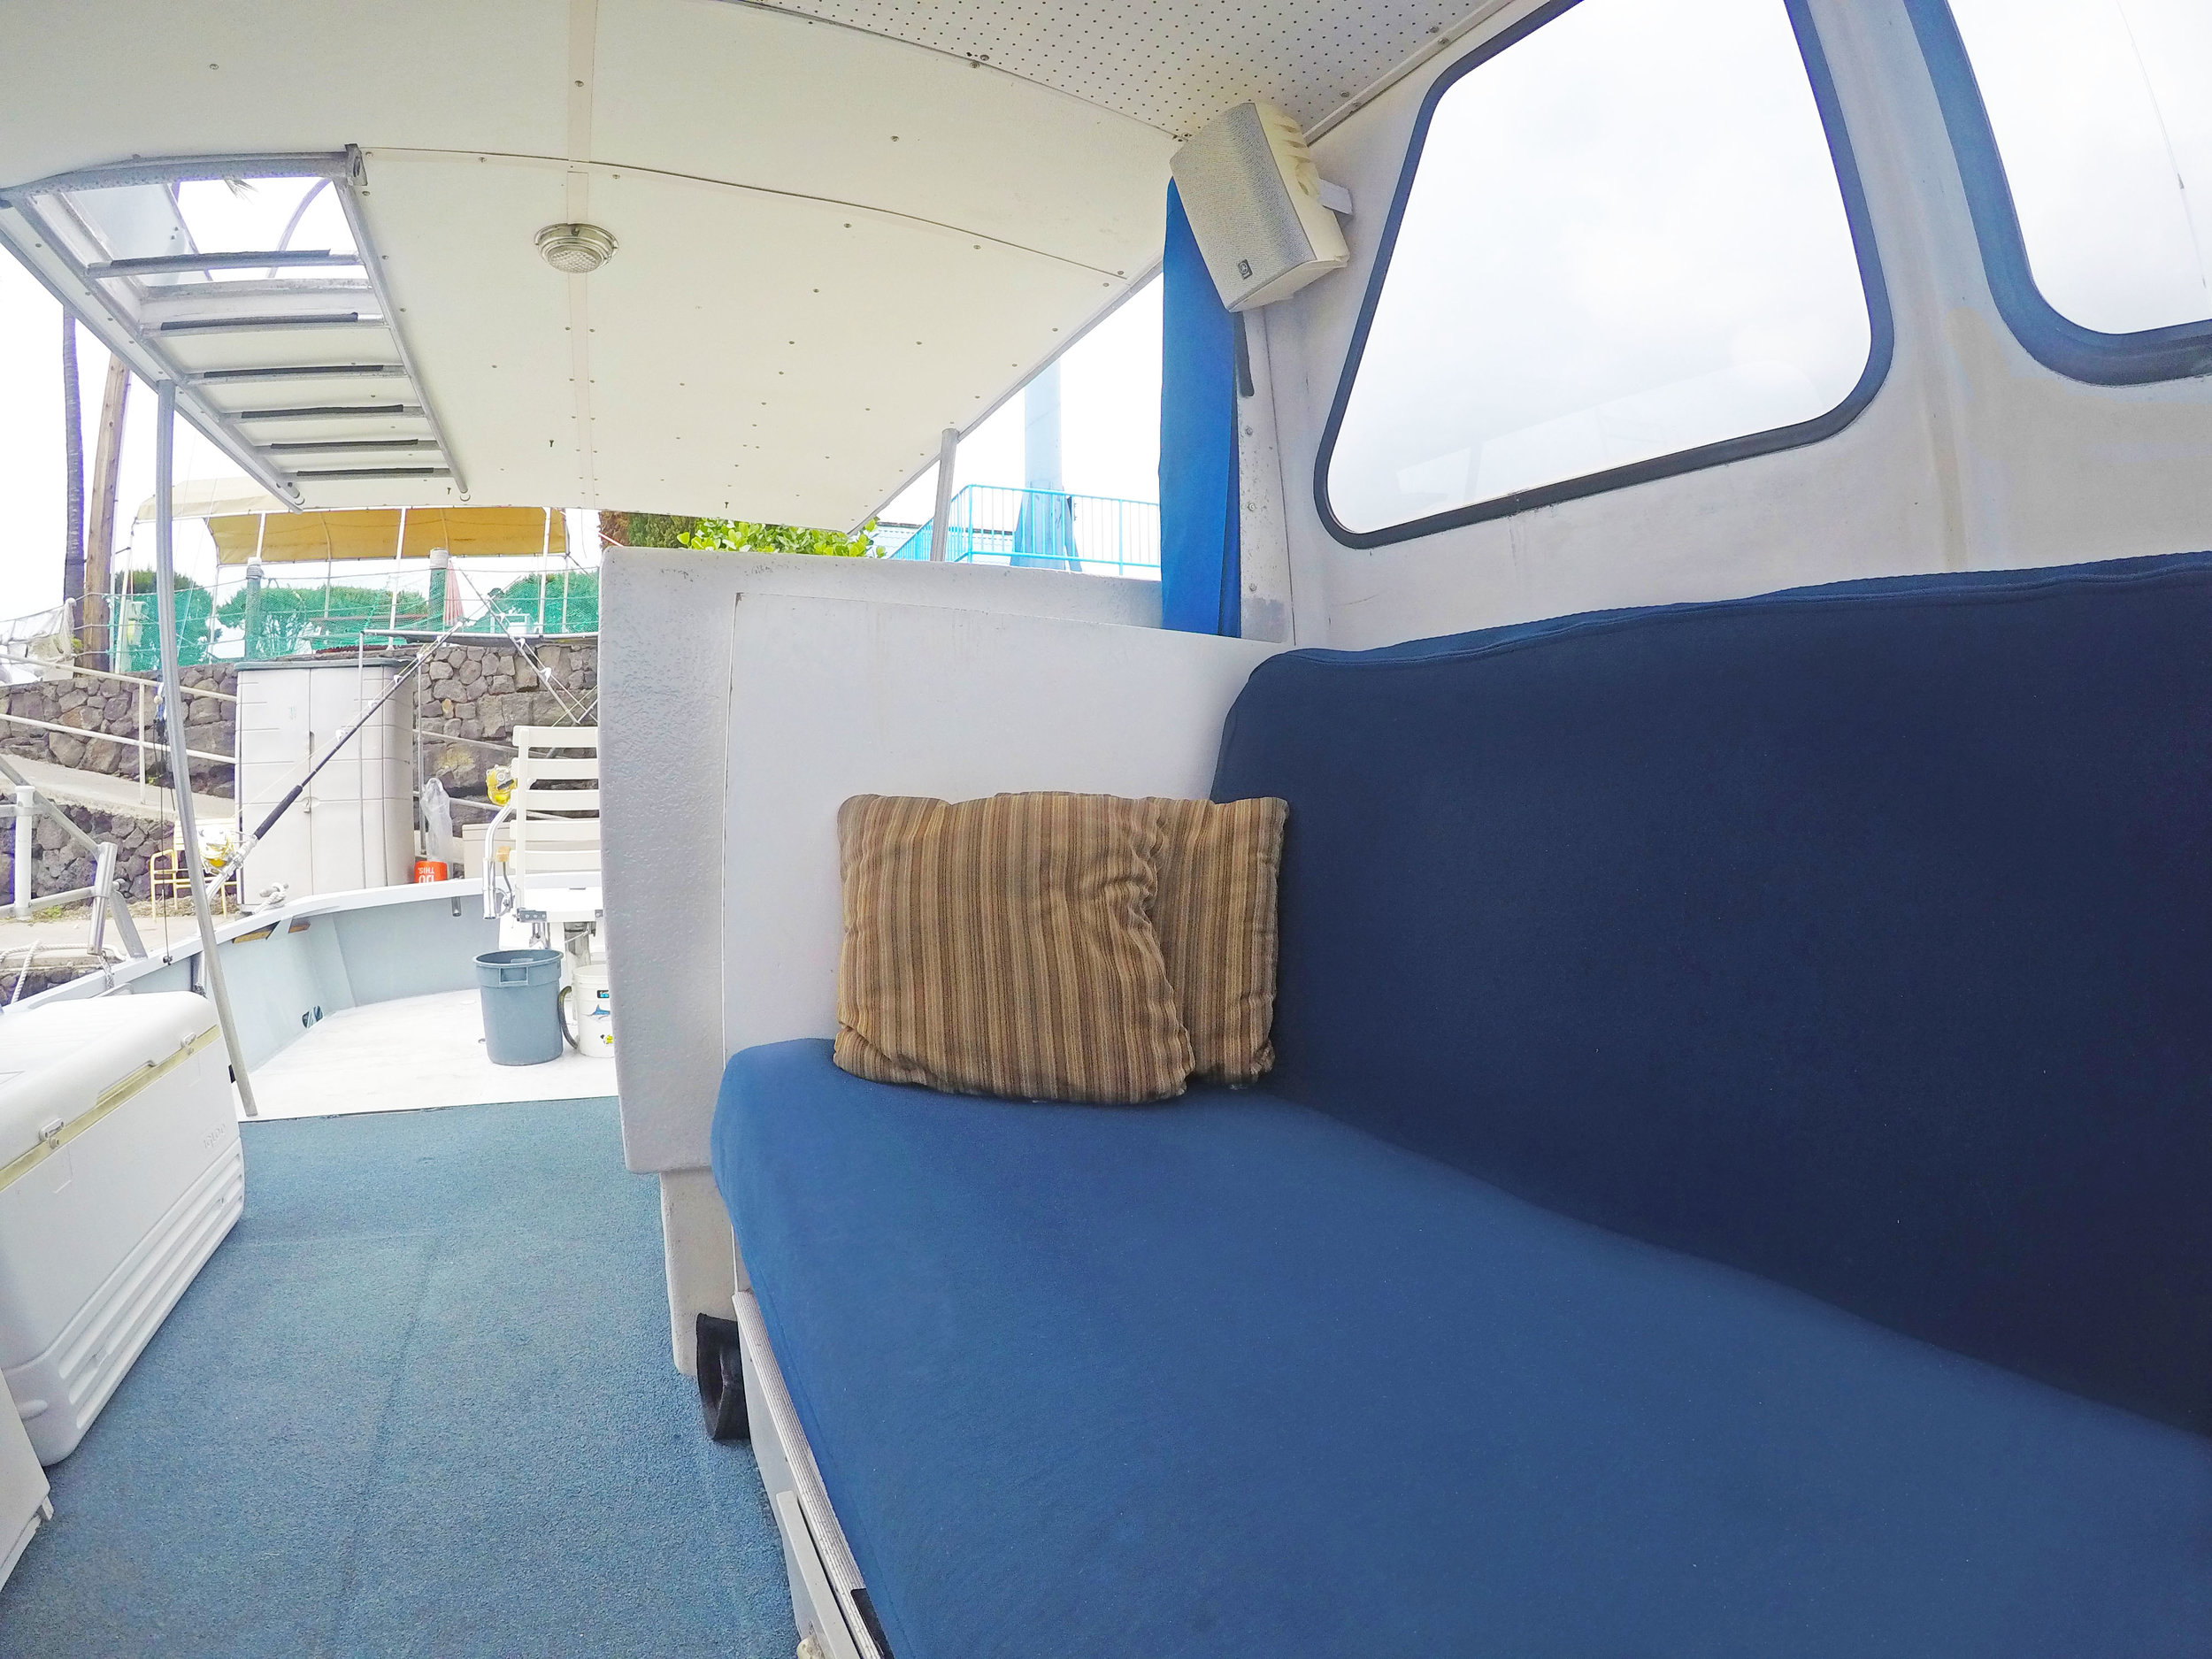 salon-boat-seating-comfortable-cockpit.jpg